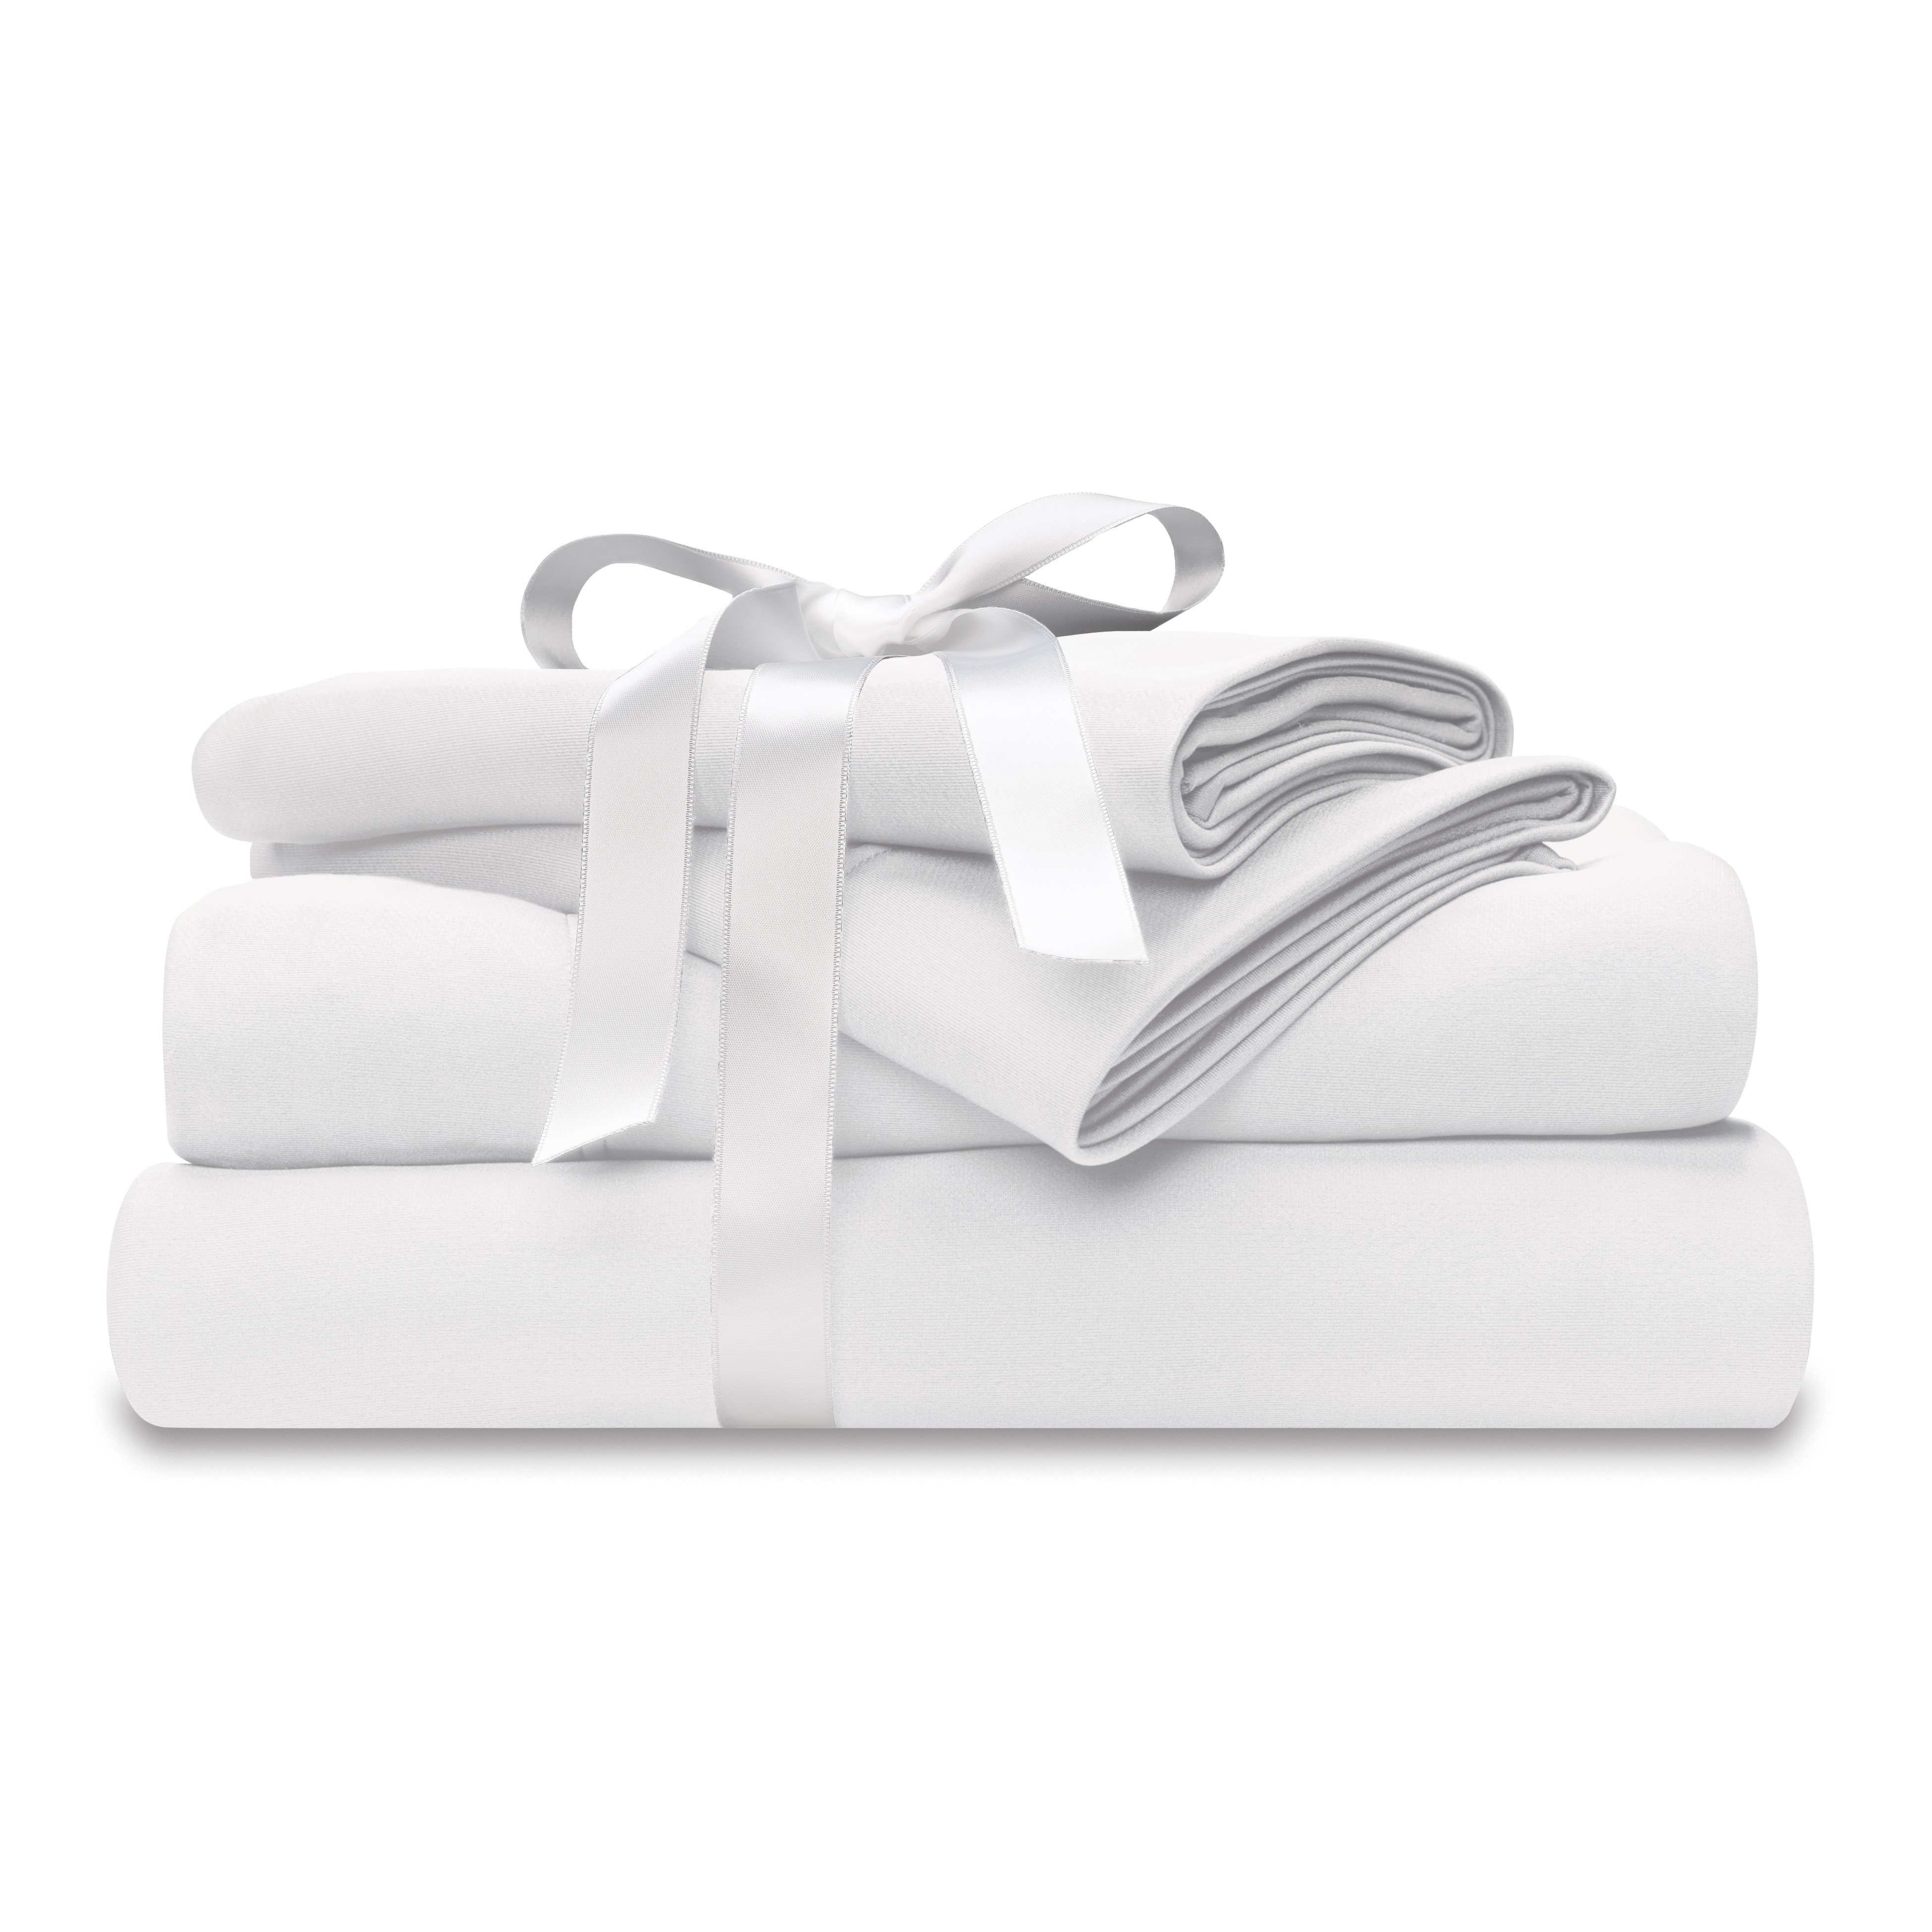 moisture-wicking white bed sheet set wtih bow at wicked sheets